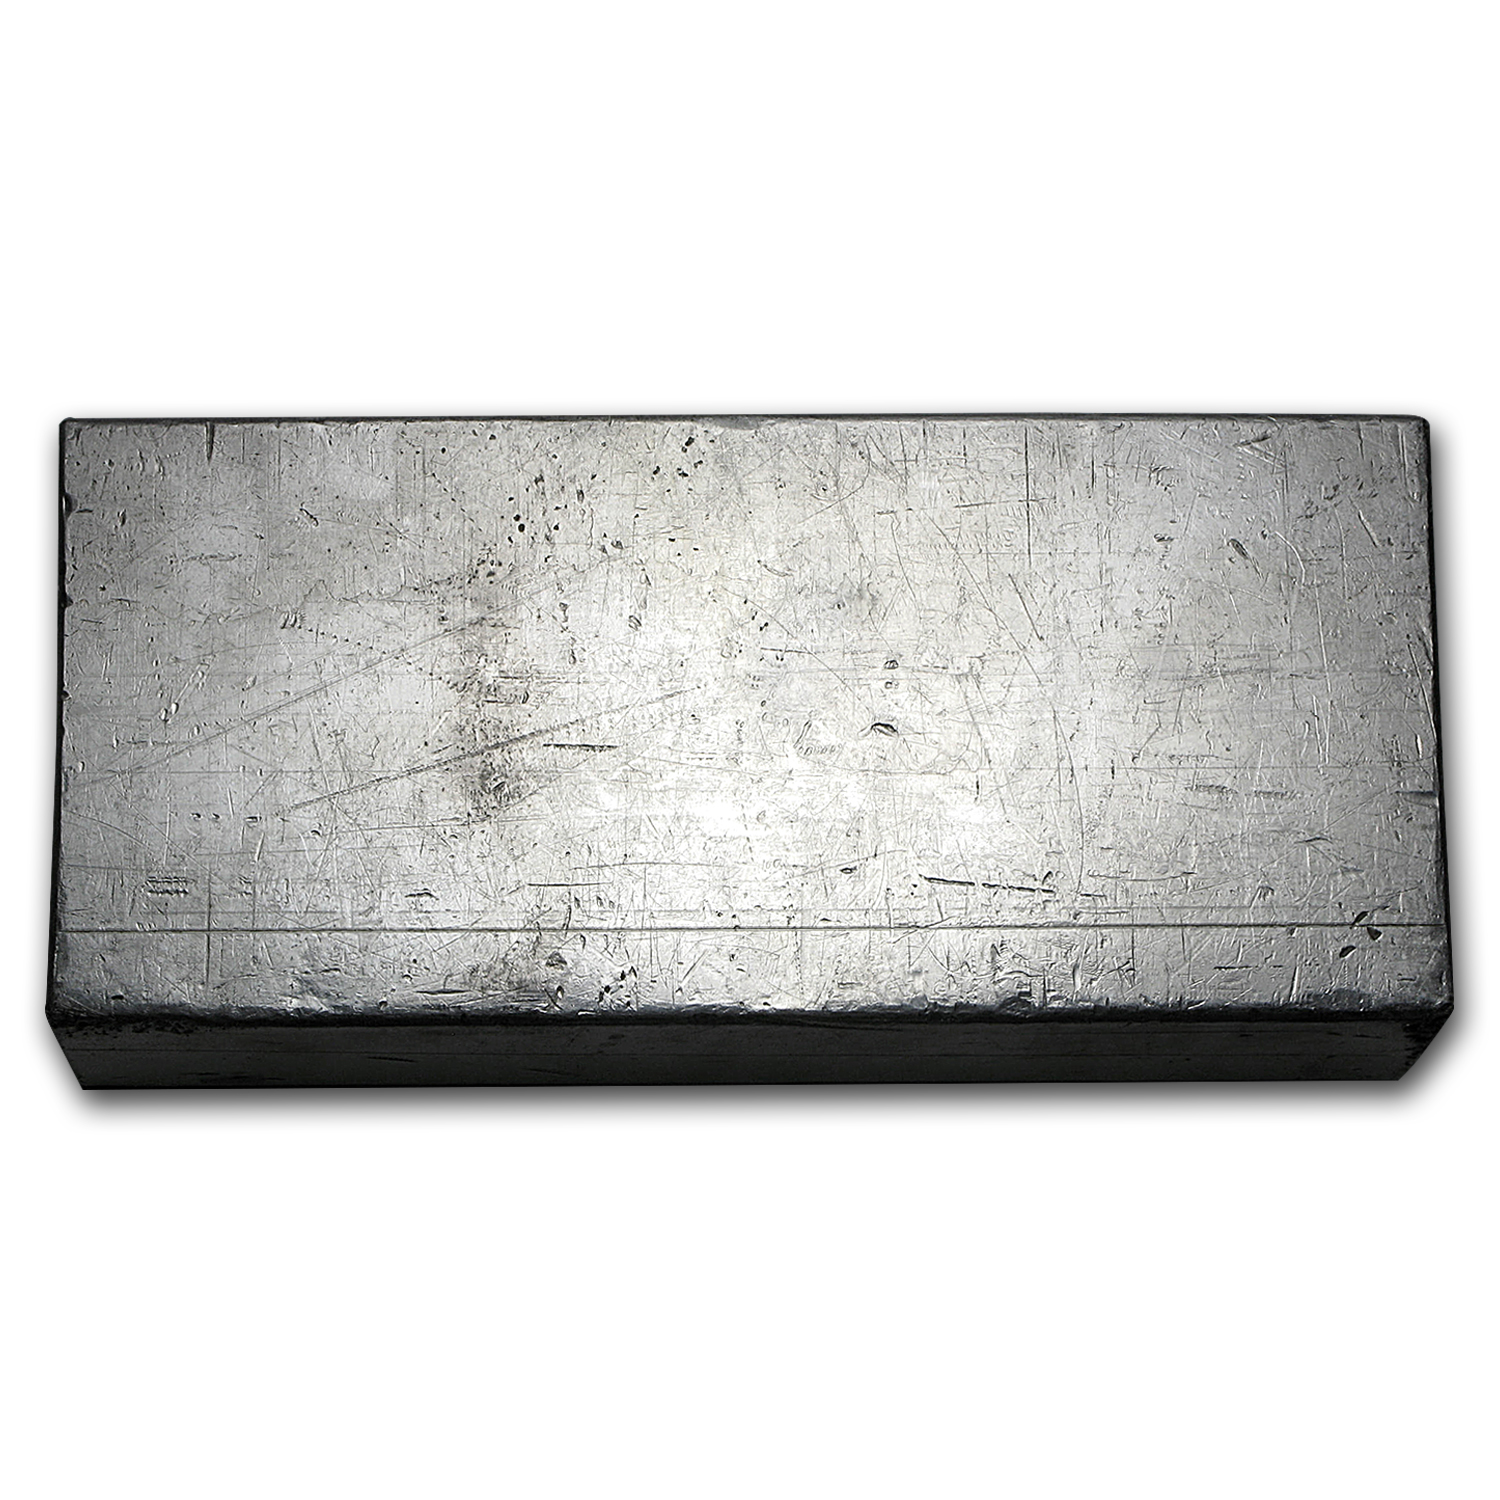 50 oz Silver Bar - Engelhard (Pressed)